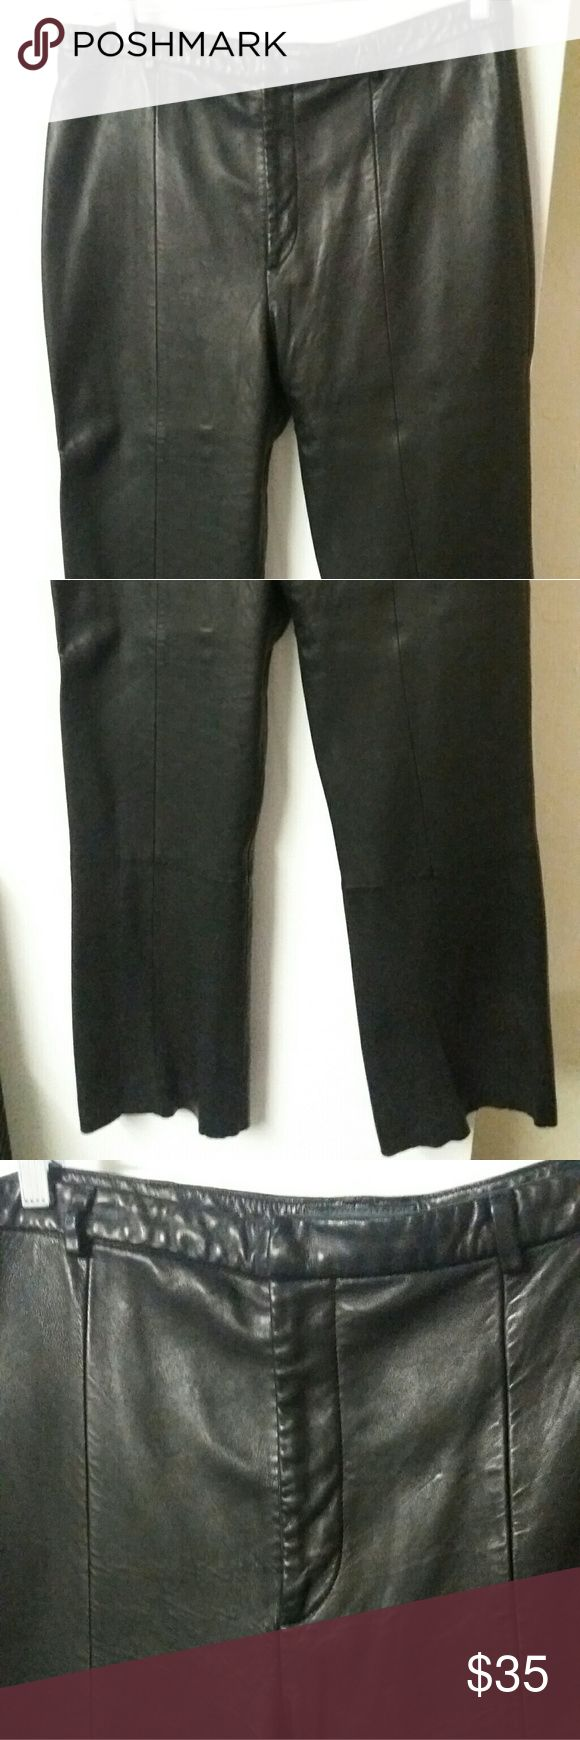 black orchid, $ The rich brown of these pants give them the color dimension of real leather, but make sure you wear them tucked into boots since they are a little too tight around the ankles.